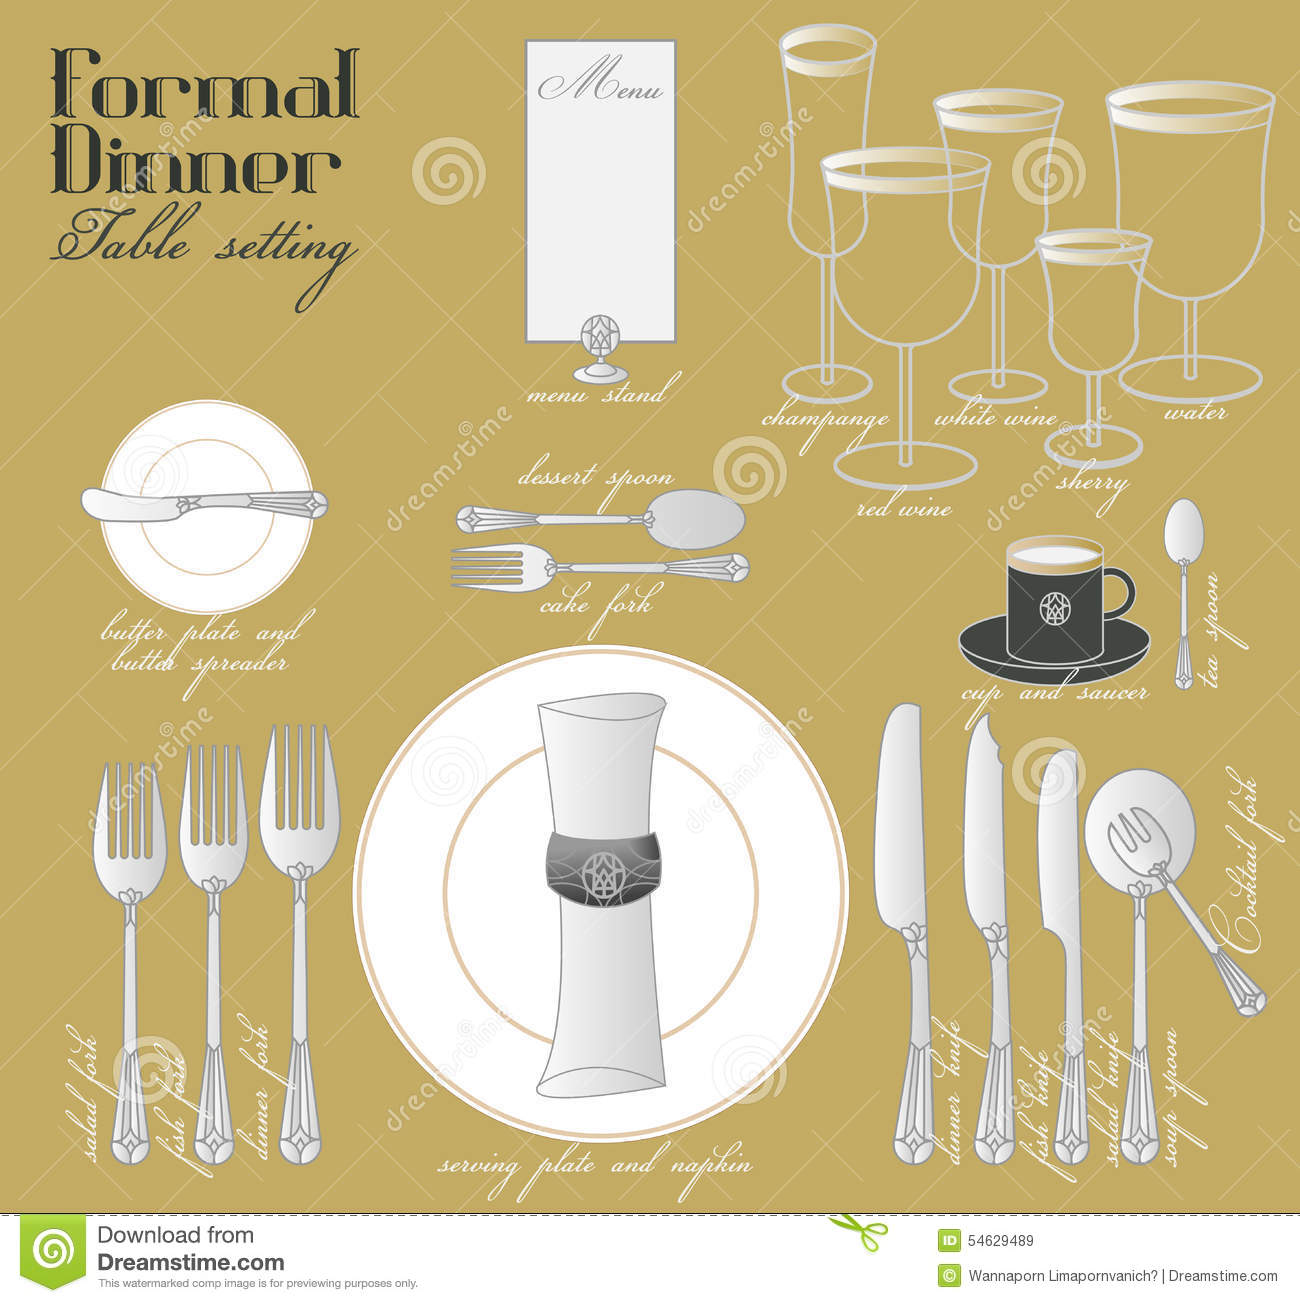 formal dinner table setting stock photo - image: 54629489